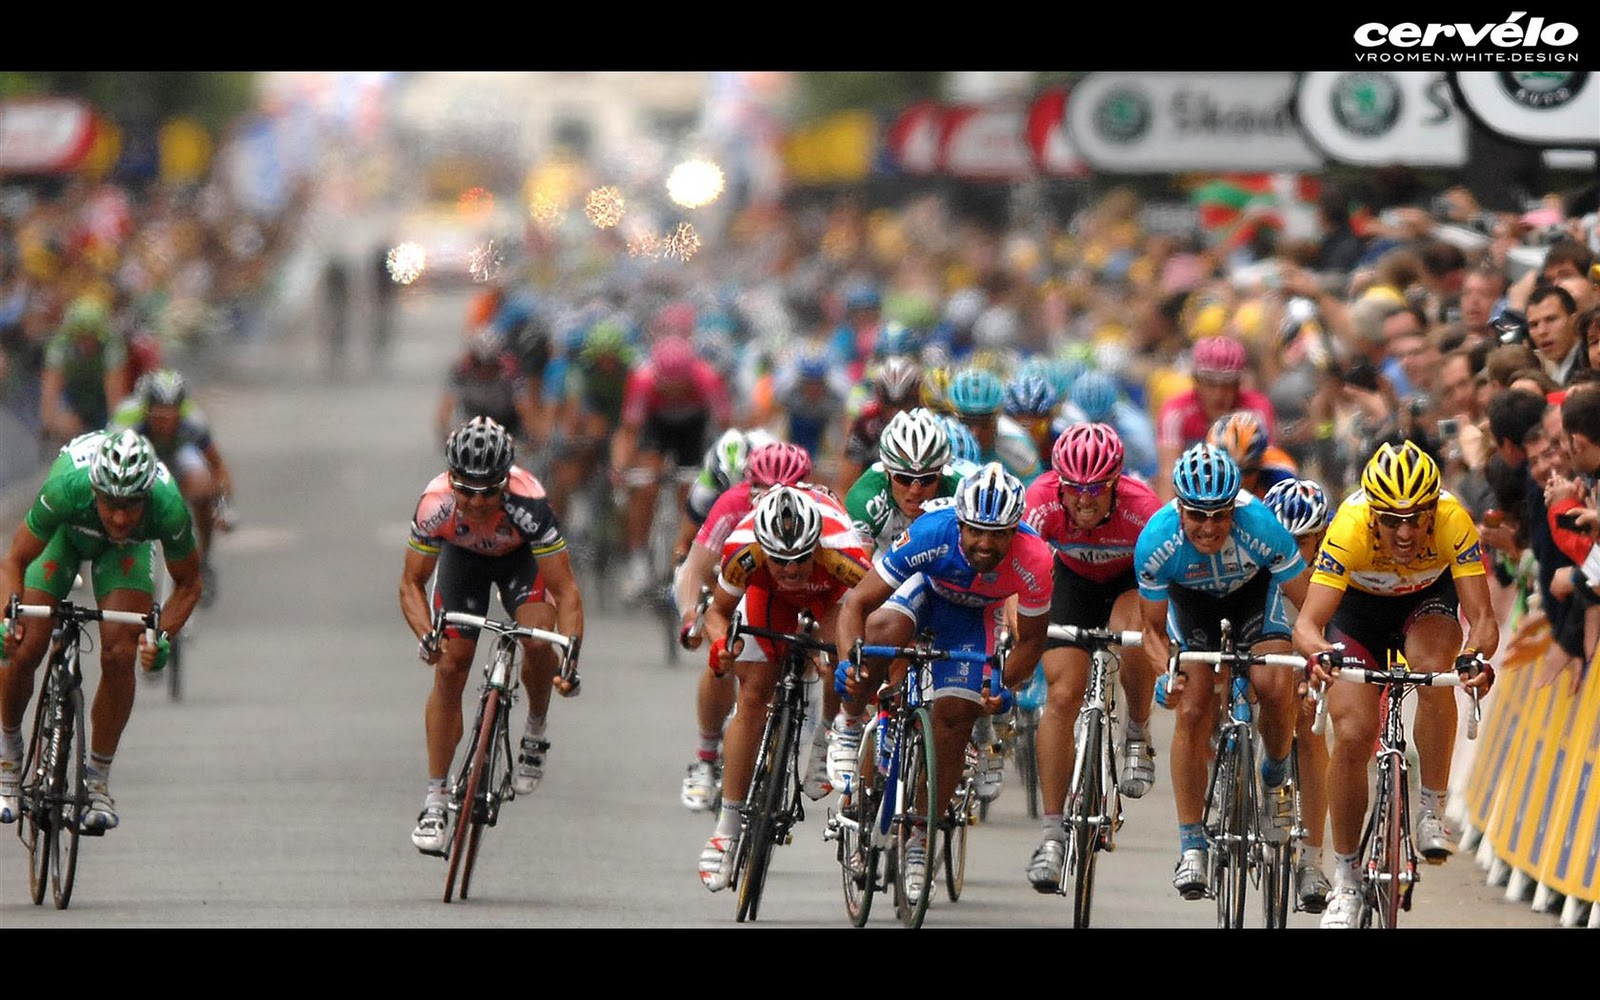 Bicycle race BEAUTIFUL DECENT WALLPAPERS 1600x1000